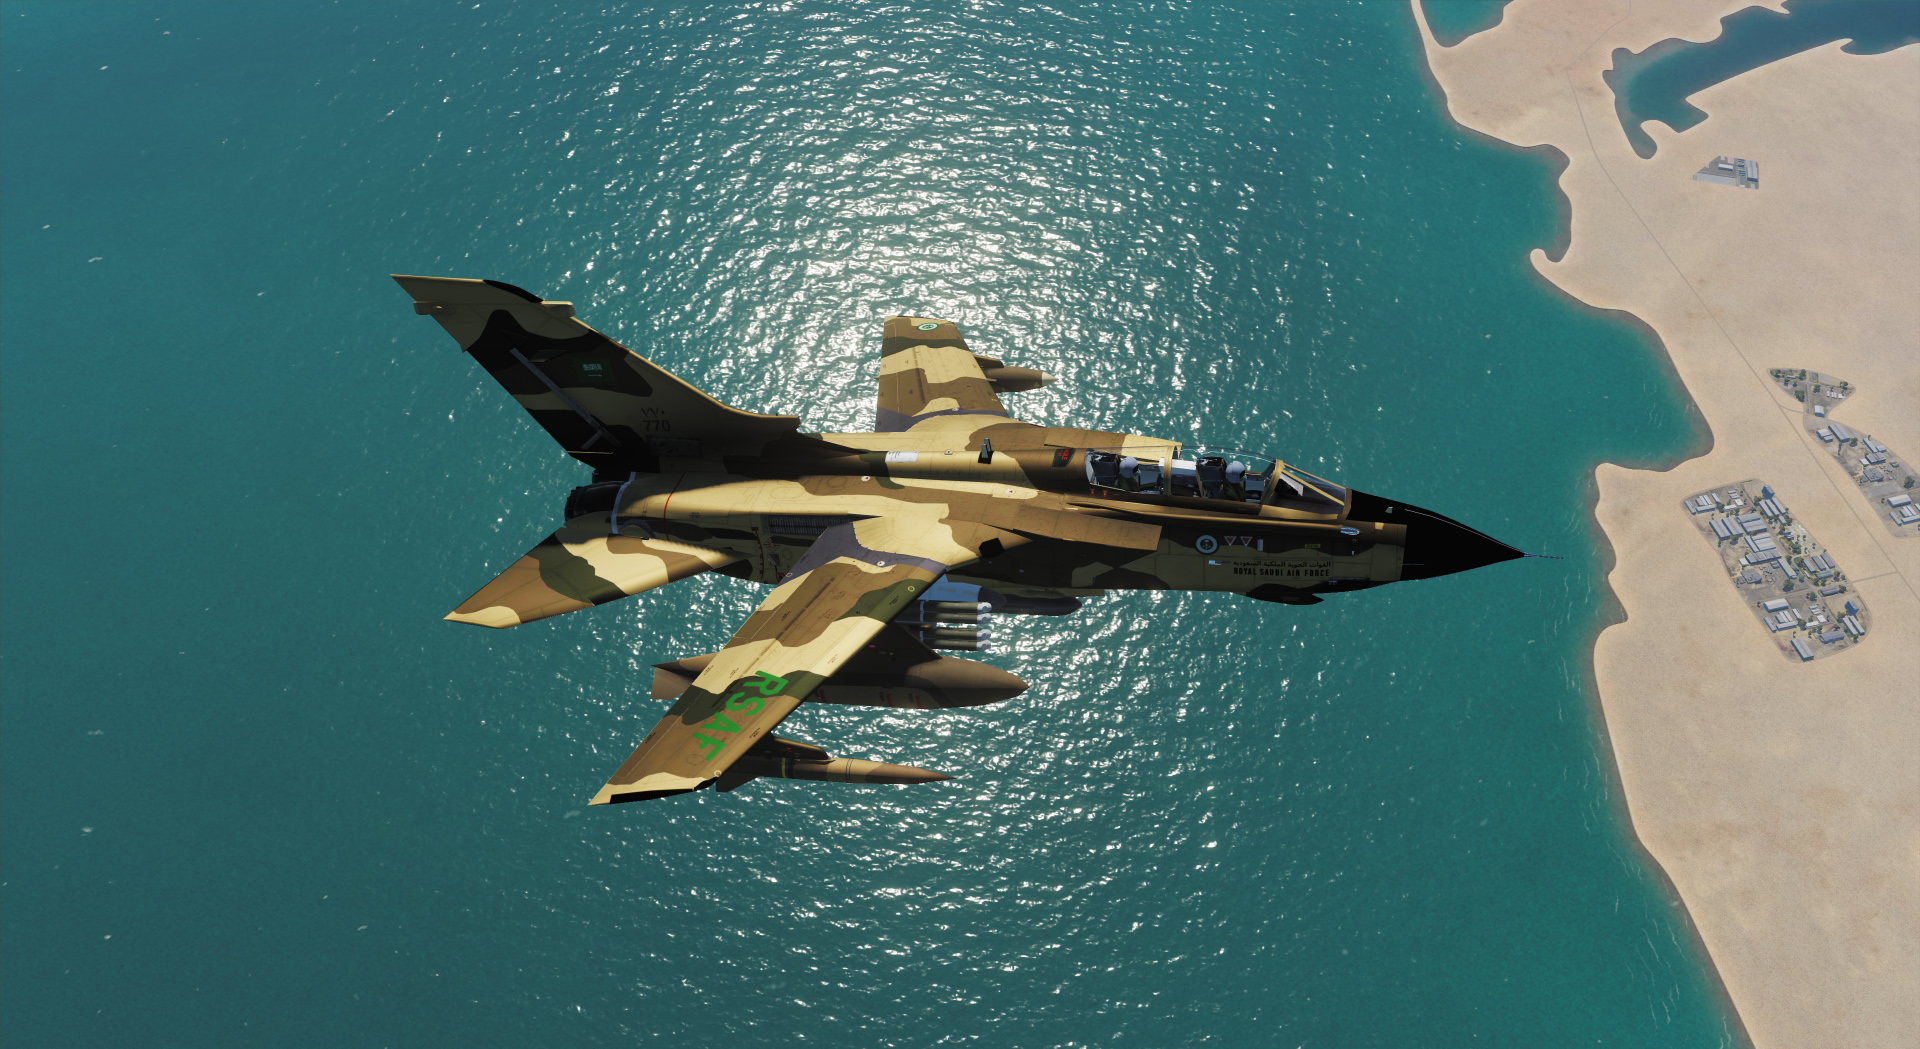 Royal Saudi Air Force Tornado Camouflage_1